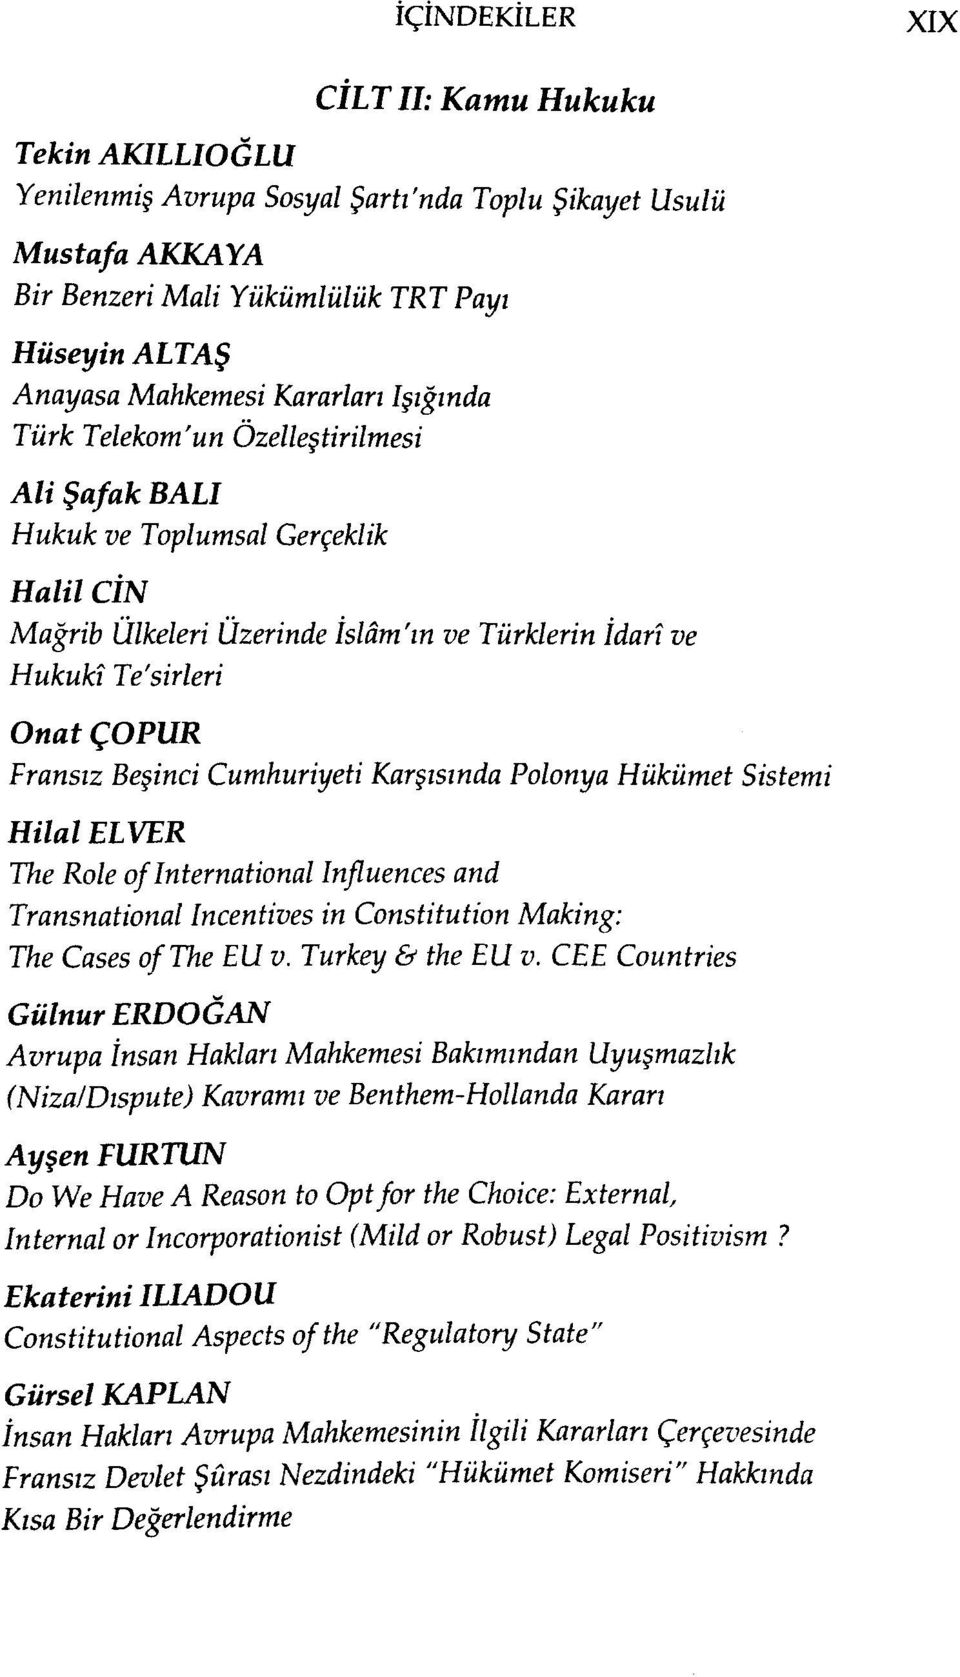 Beşinci Cumhuriyeti Karşısında Polonya Hükümet Sistemi Hilal ELVER The Role of International Influences and Transnational Incentives in Constitution Making: The Cases of The EU v. Turkey & the EU v.